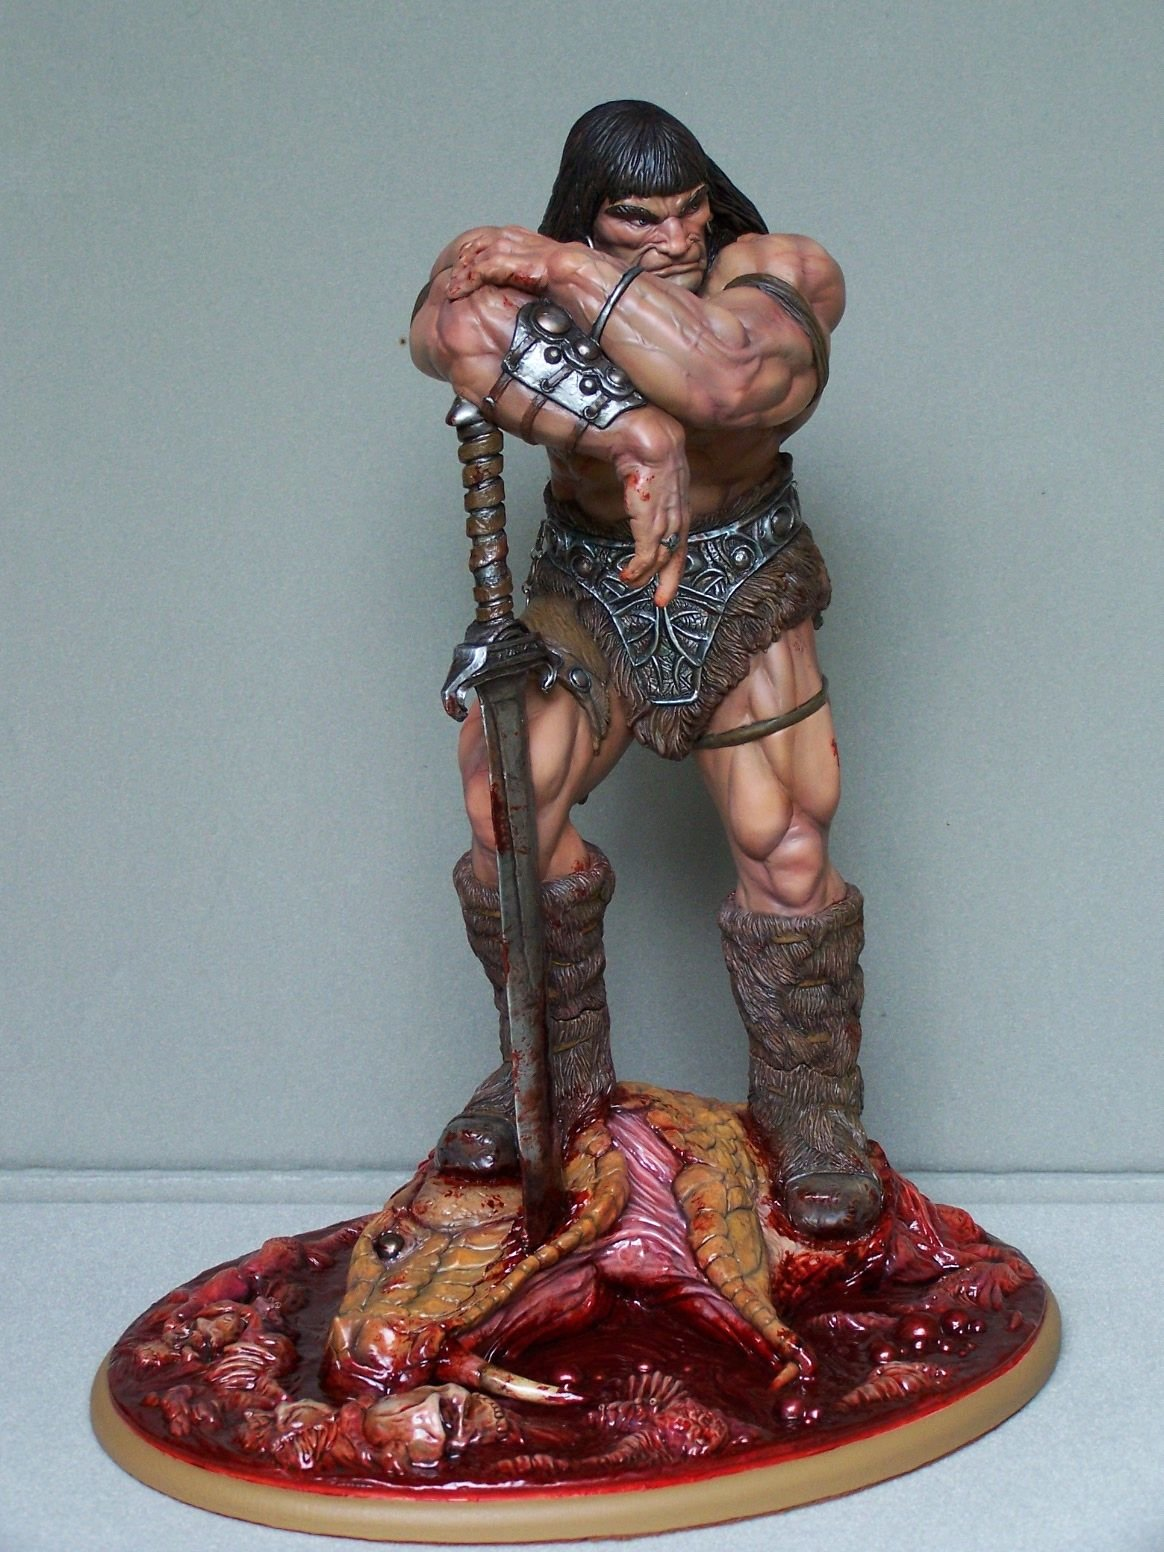 Sheridan doose conan savage snake slayer 13